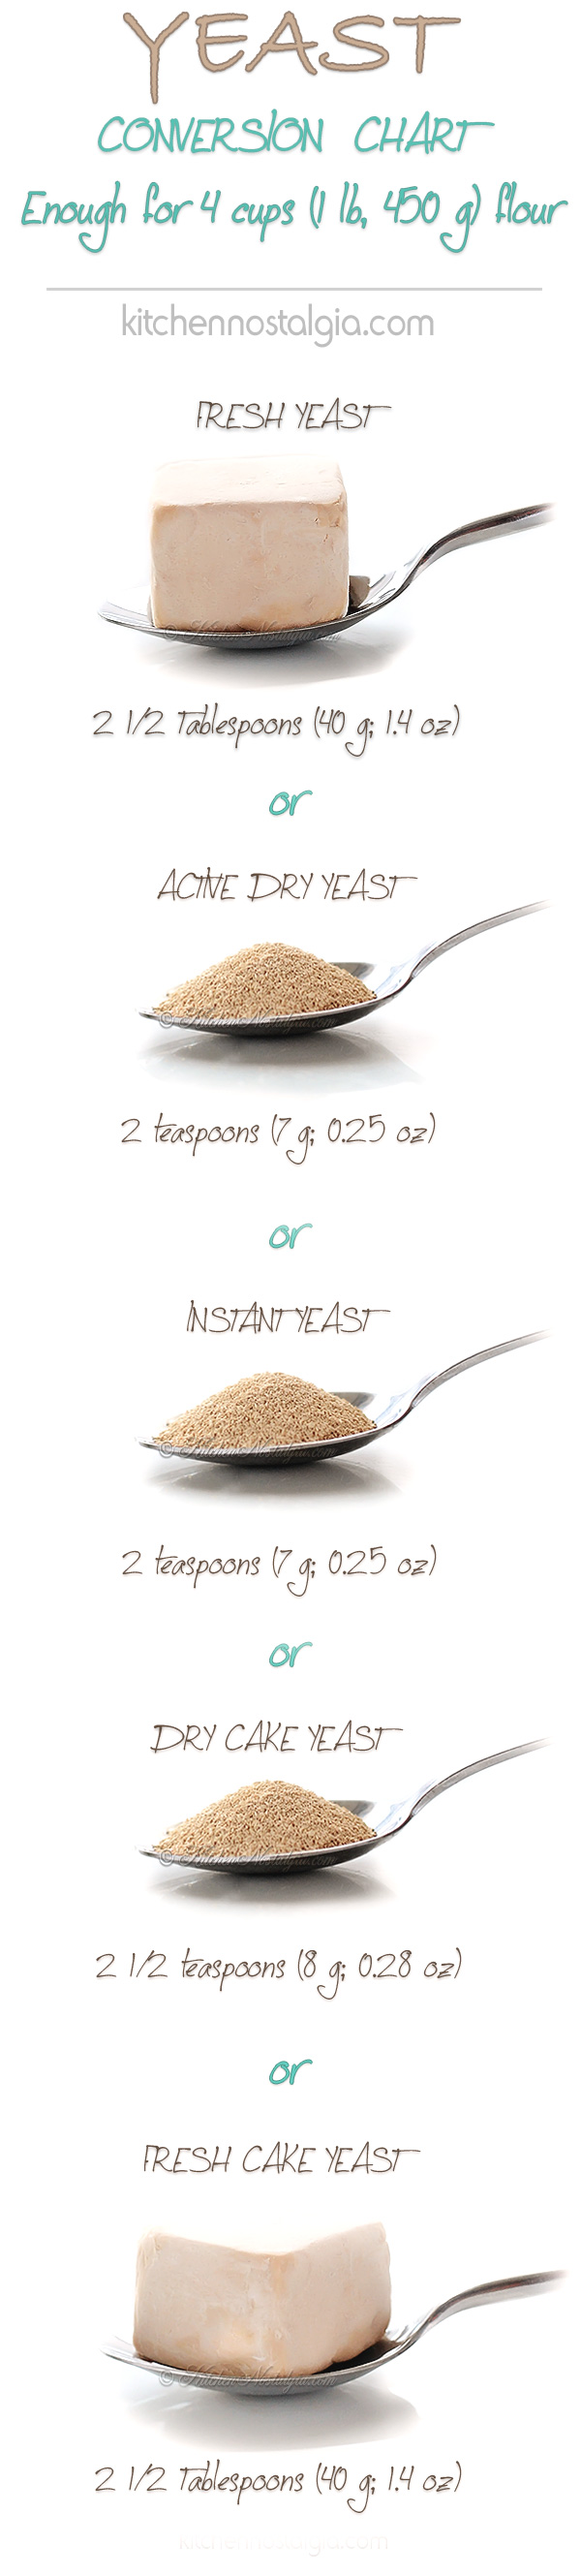 Yeast Conversion Chart - kitchennostalgia.com